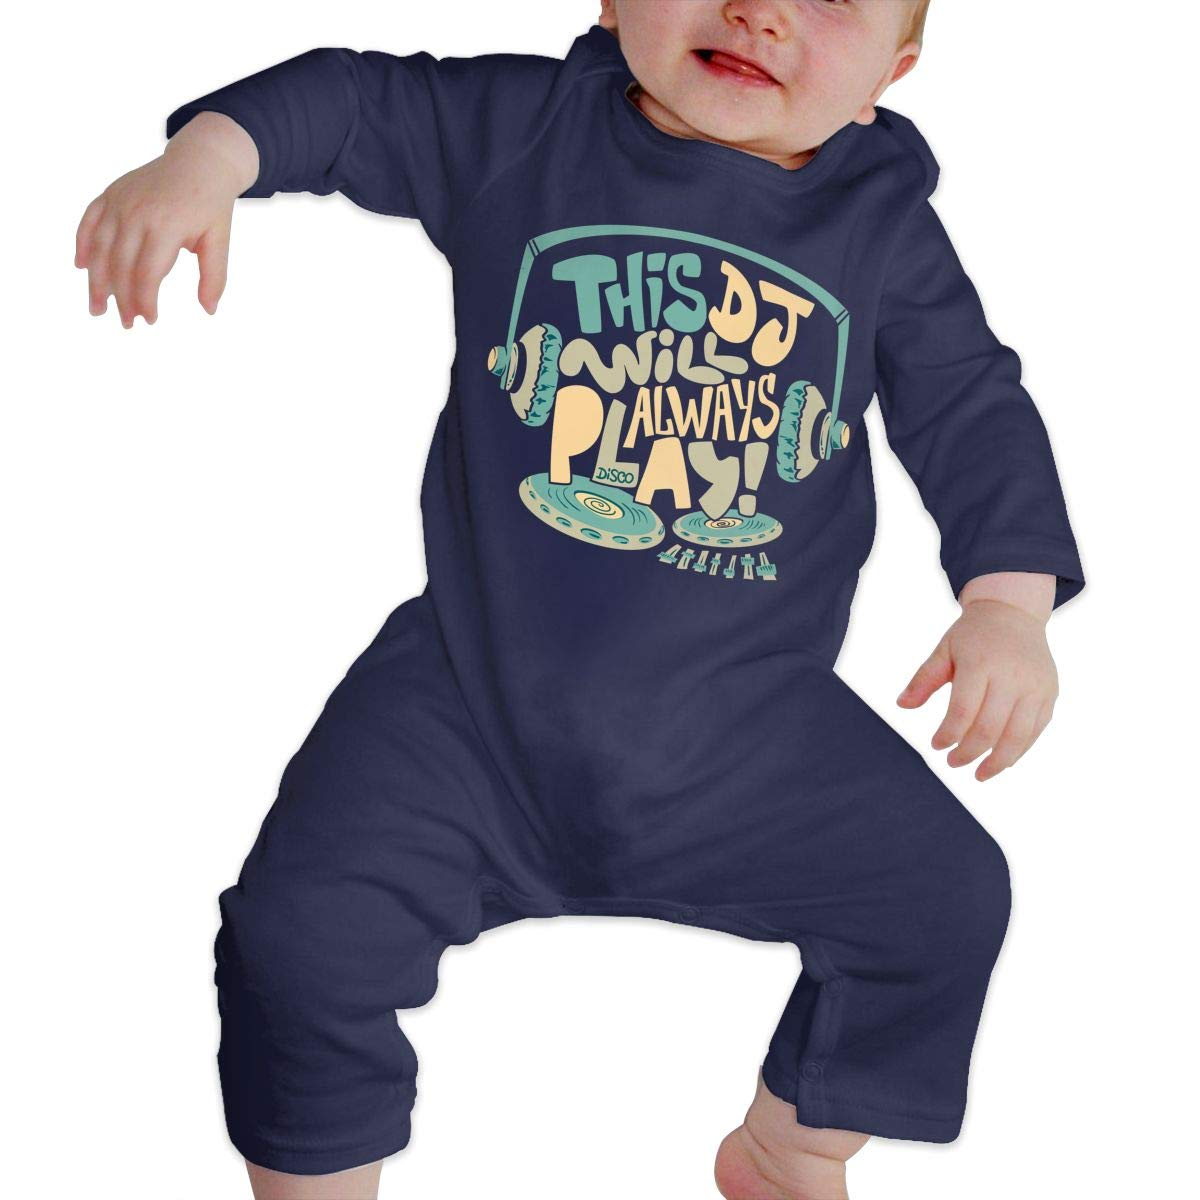 Unisex Baby Crew Neck Long Sleeve Pure Color Romper This Dj Will Play Always Jumpsuit